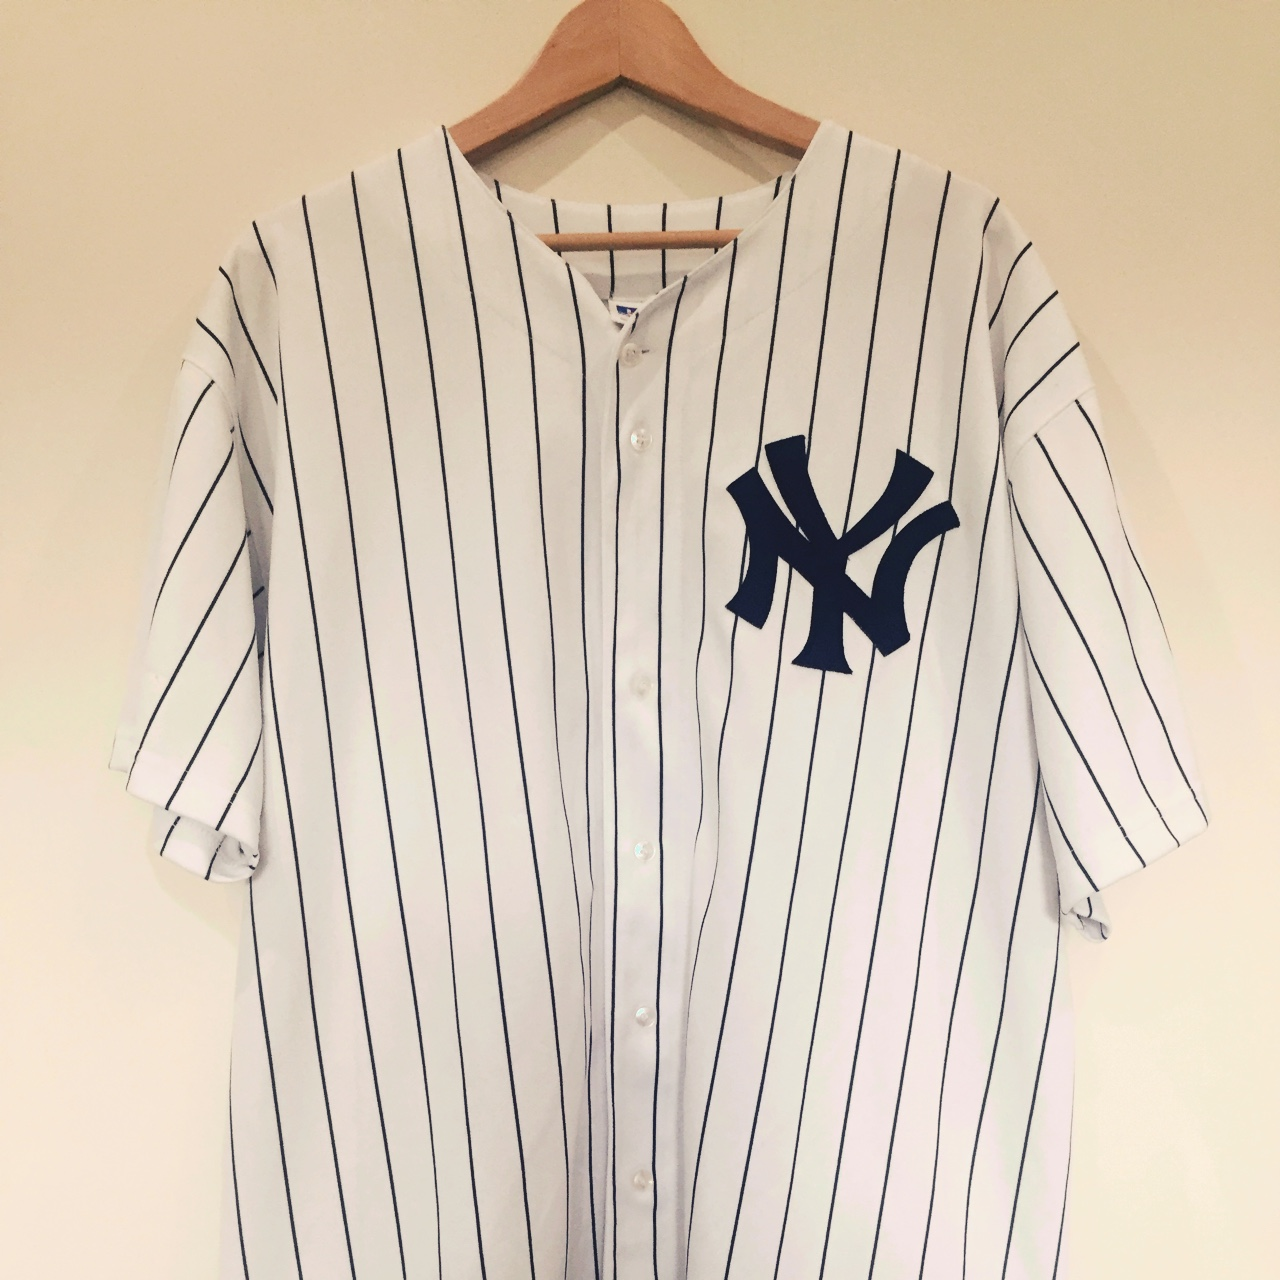 best service 99cd2 5c7c4 New York Yankees Baseball Jersey with Giambi #25 ... - Depop